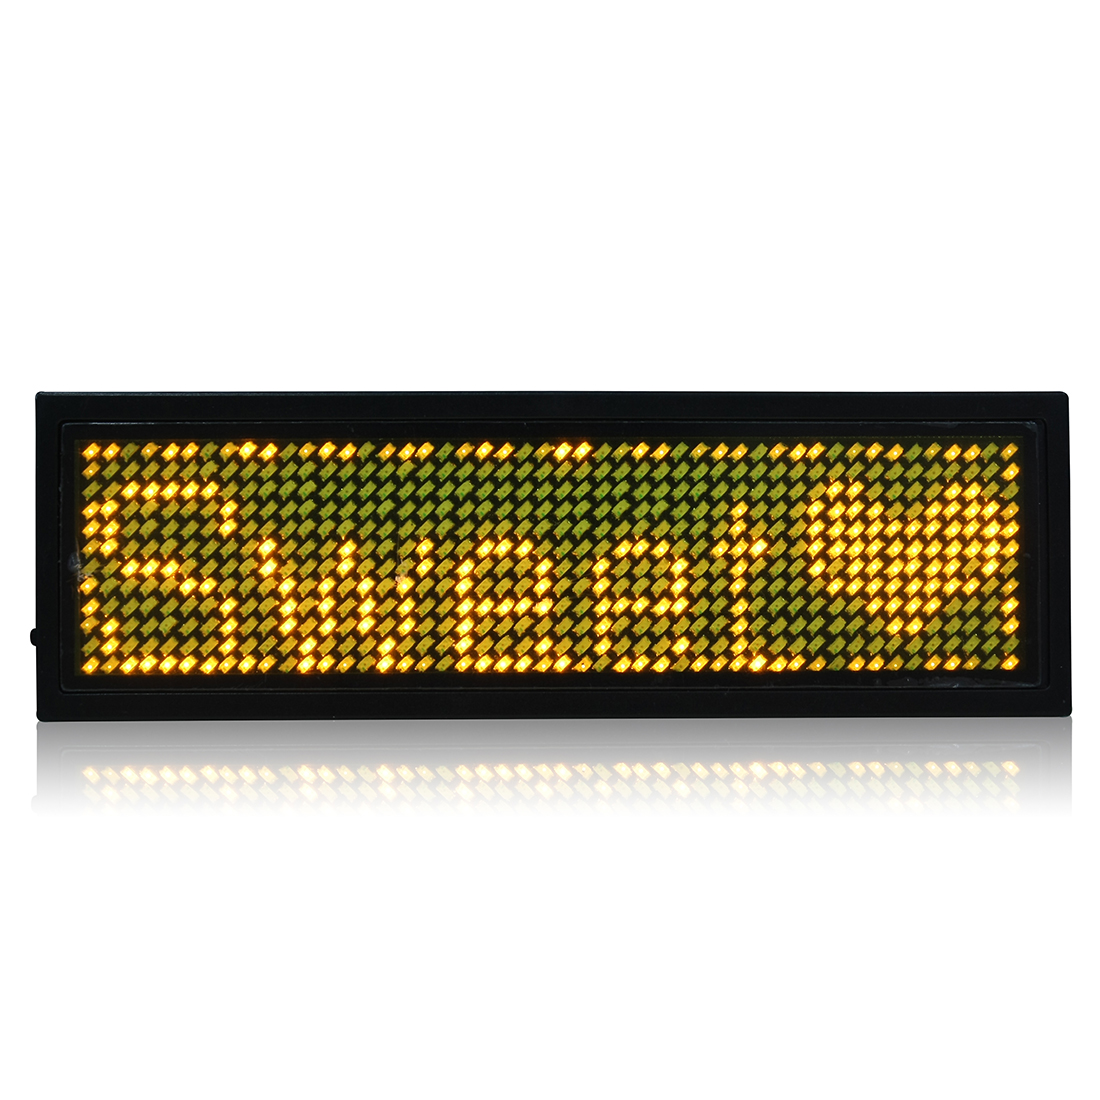 LED Badge Digital Scrolling Message Name Tag Display Portable Rechargeable UK plug Yellow